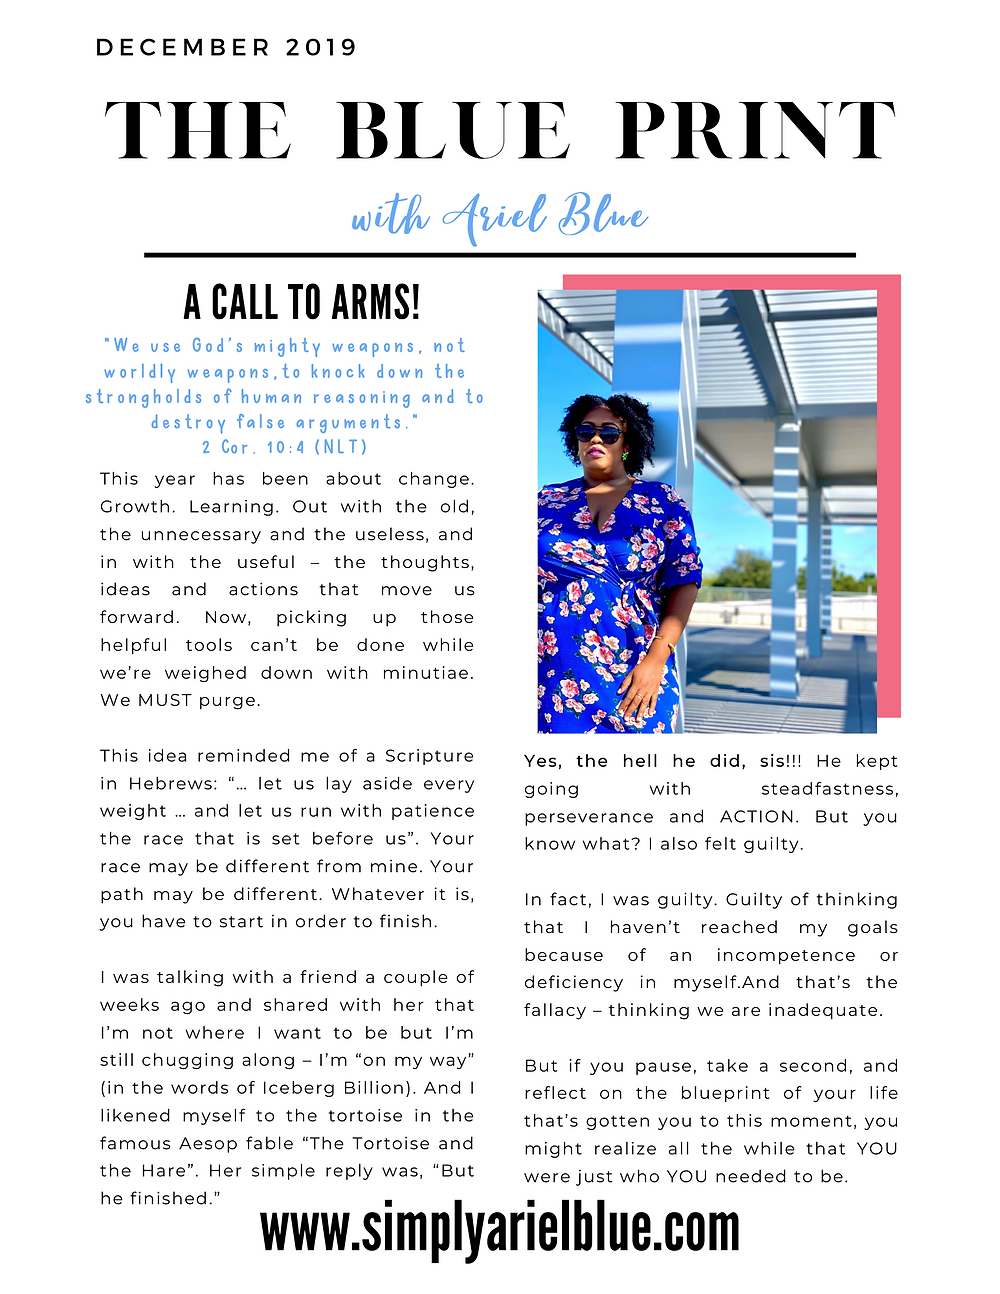 The Blue Print | December 2019 | Page 1 | A Call To Arms